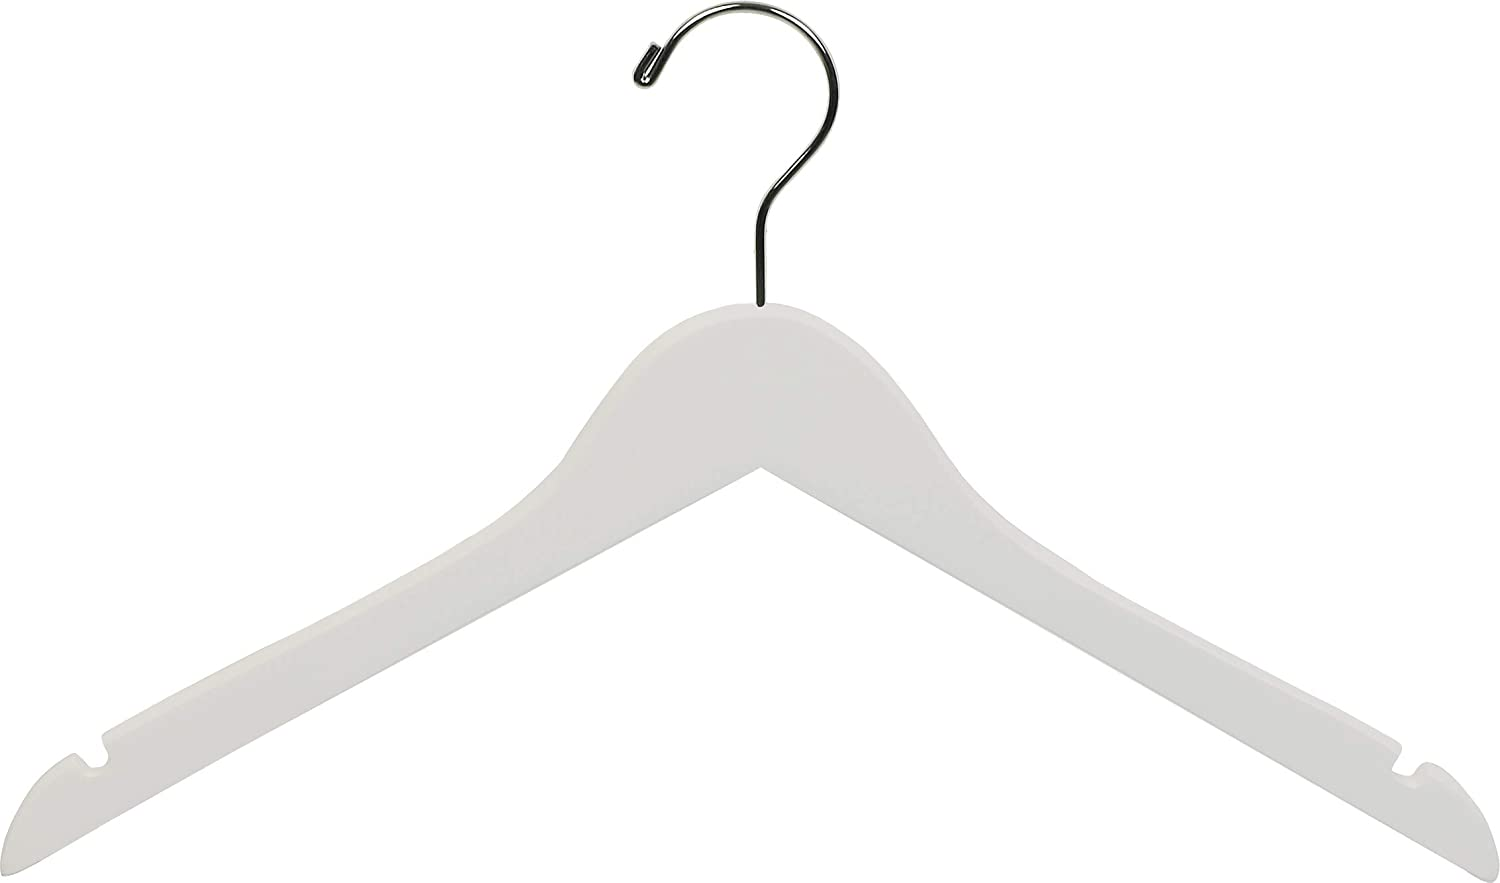 The Great American Hanger Company White Wood Top Hanger, Box of 100 Space Saving 17 Inch Flat Wooden Hangers w Chrome Swivel Hook & Notches for Shirt Jacket or Dress